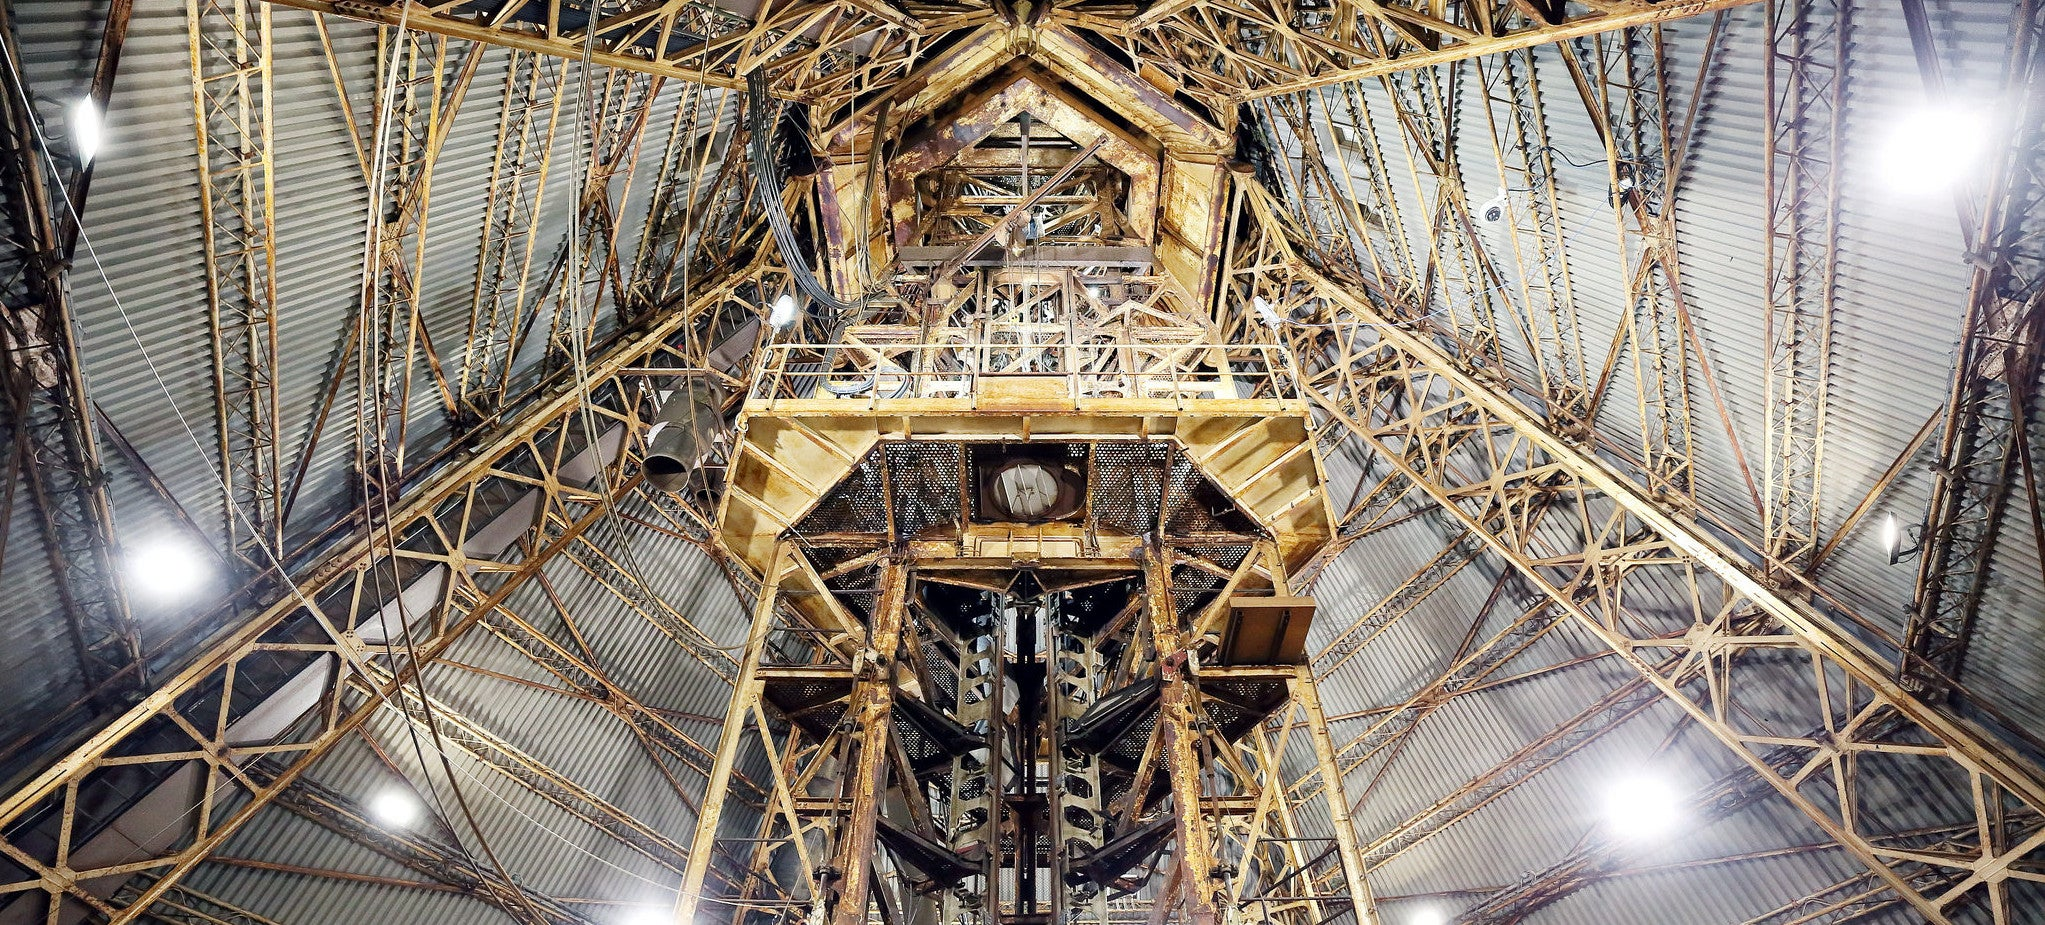 Peer Up Inside This Rocket Launch Tower